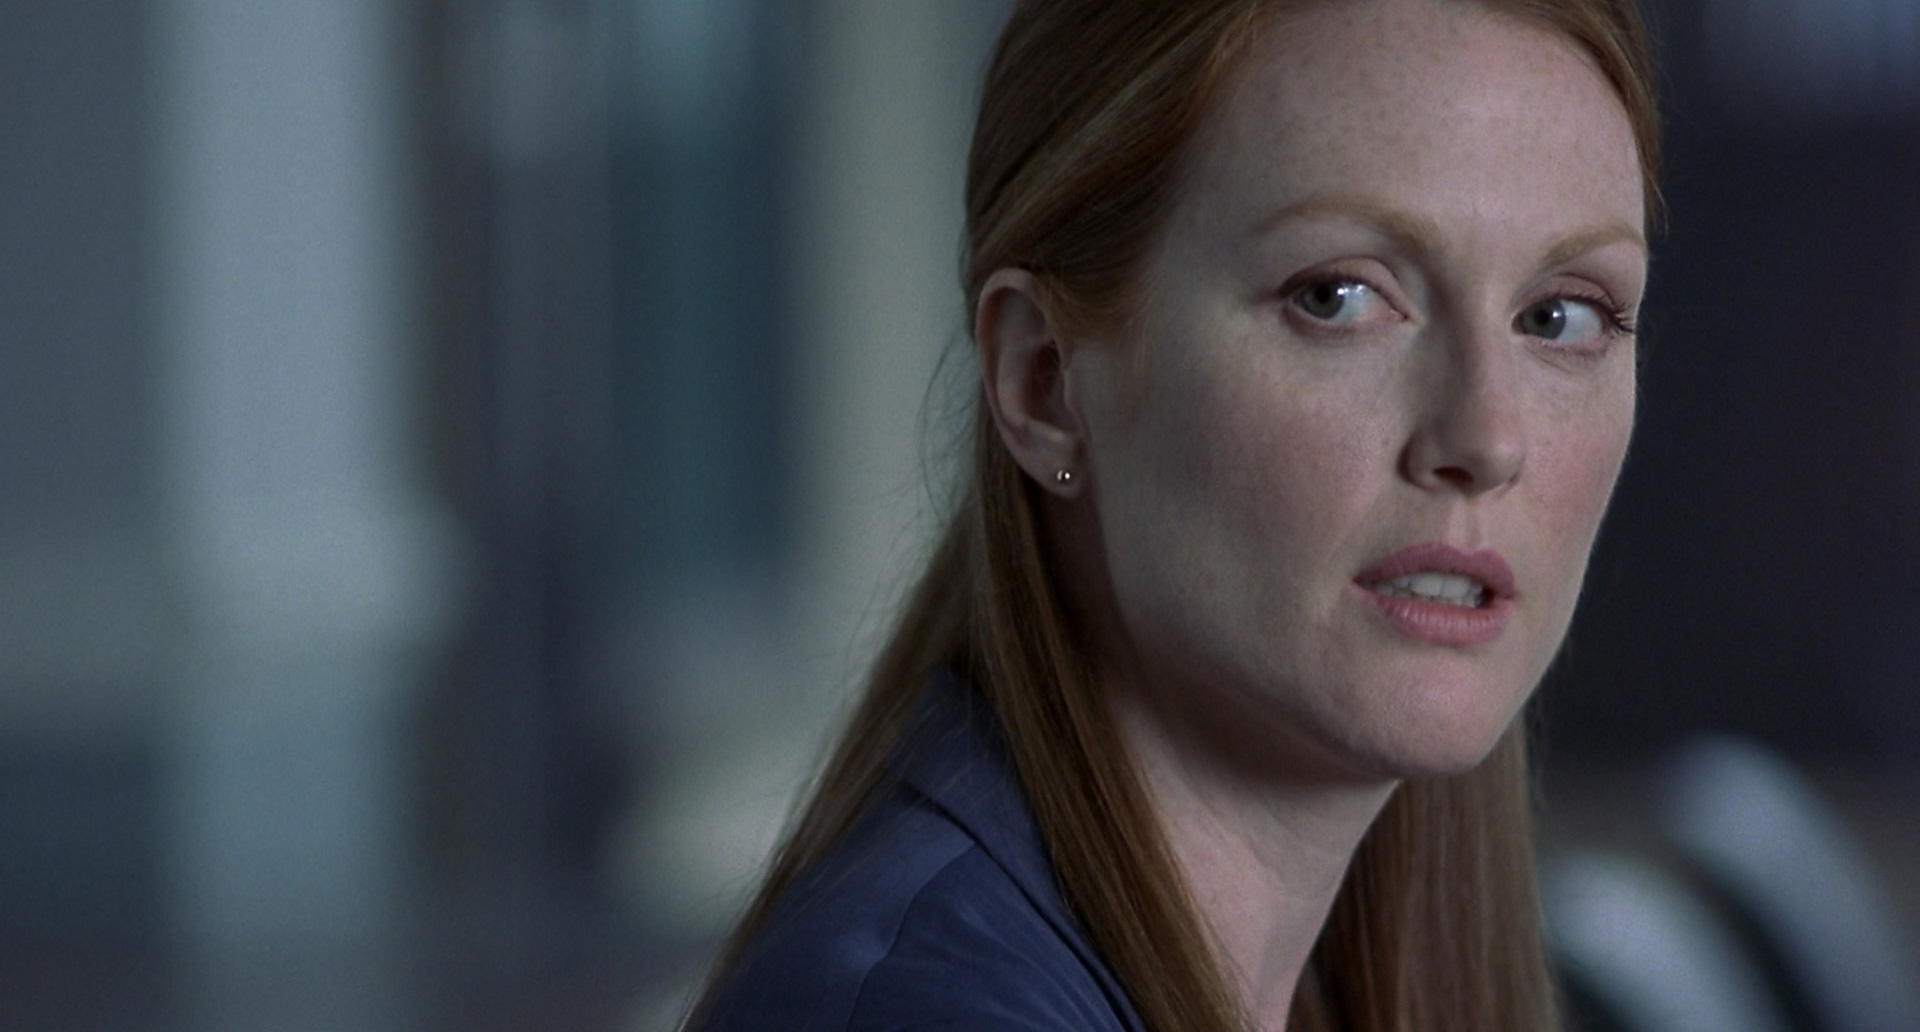 Julianne Moore in HANNIBAL (2001) © Universal Pictures